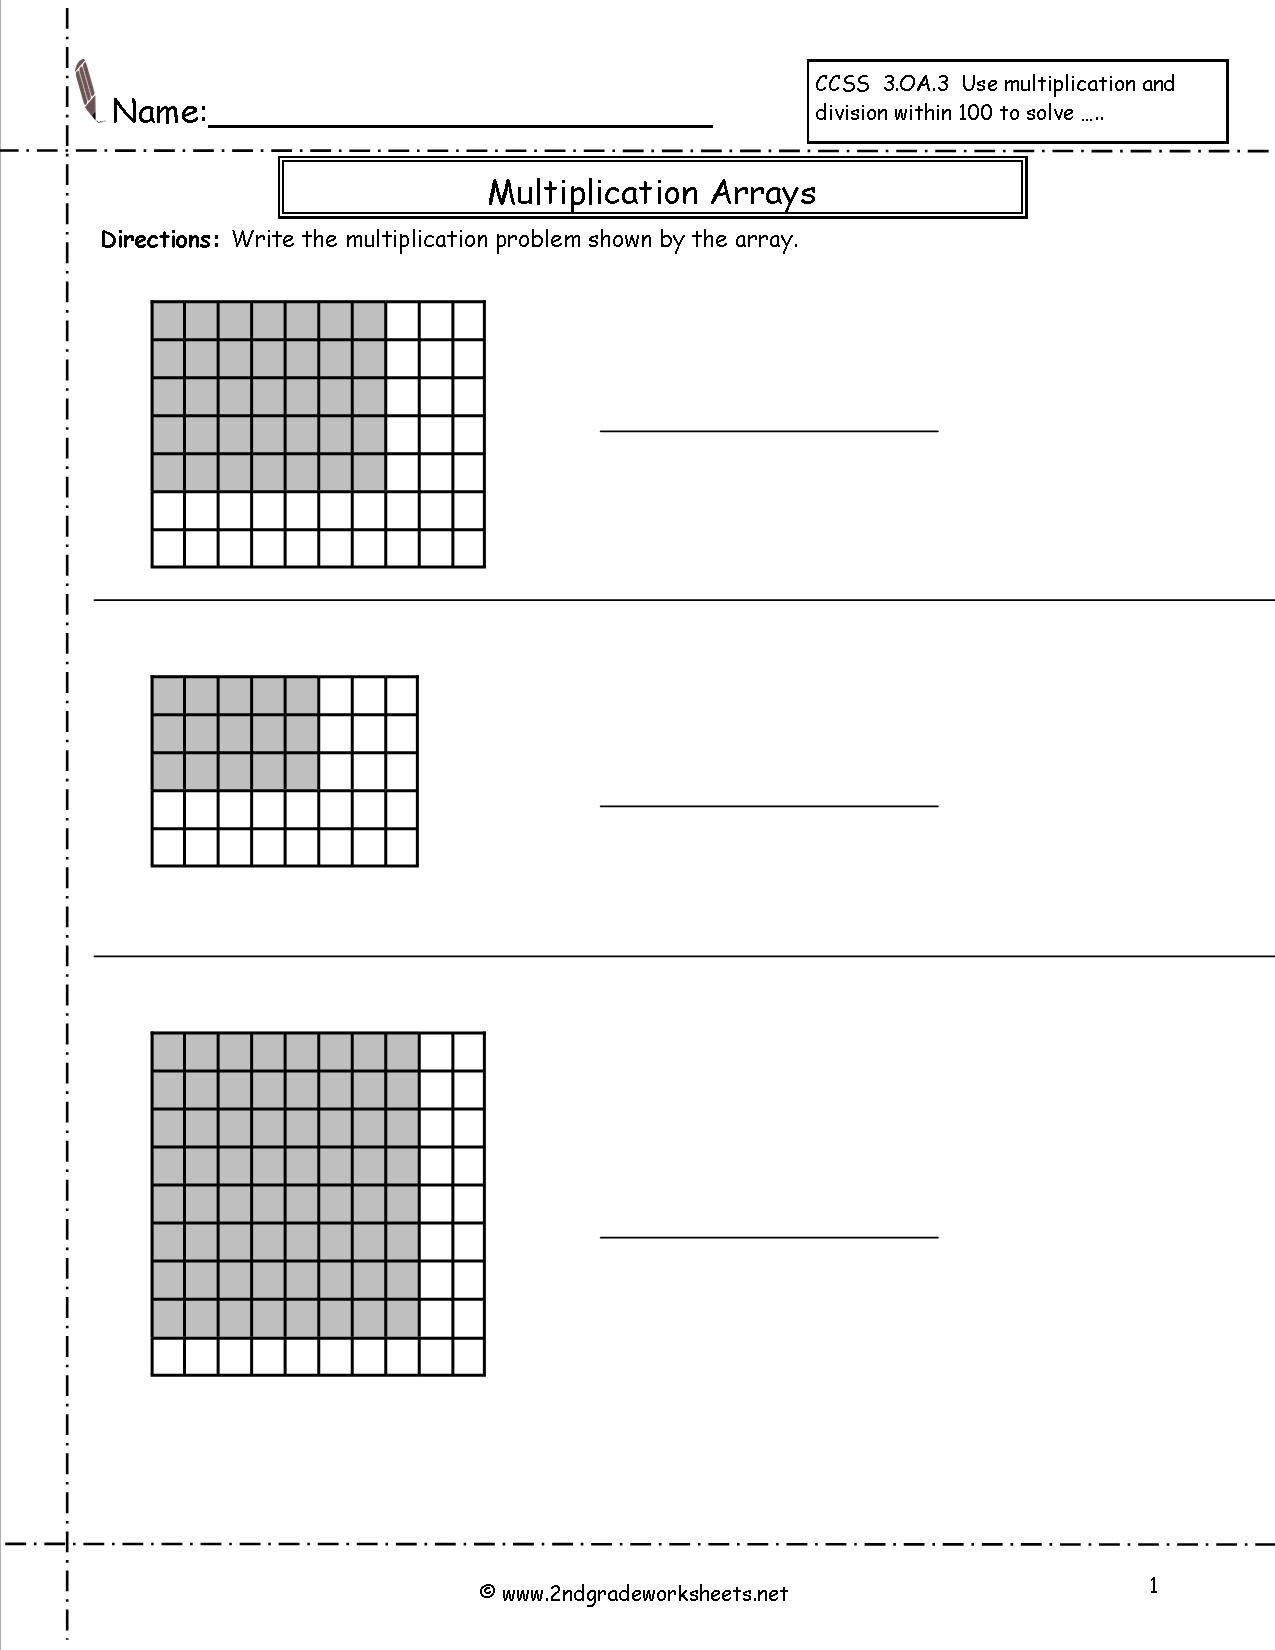 Free 2ndgradeworksheets